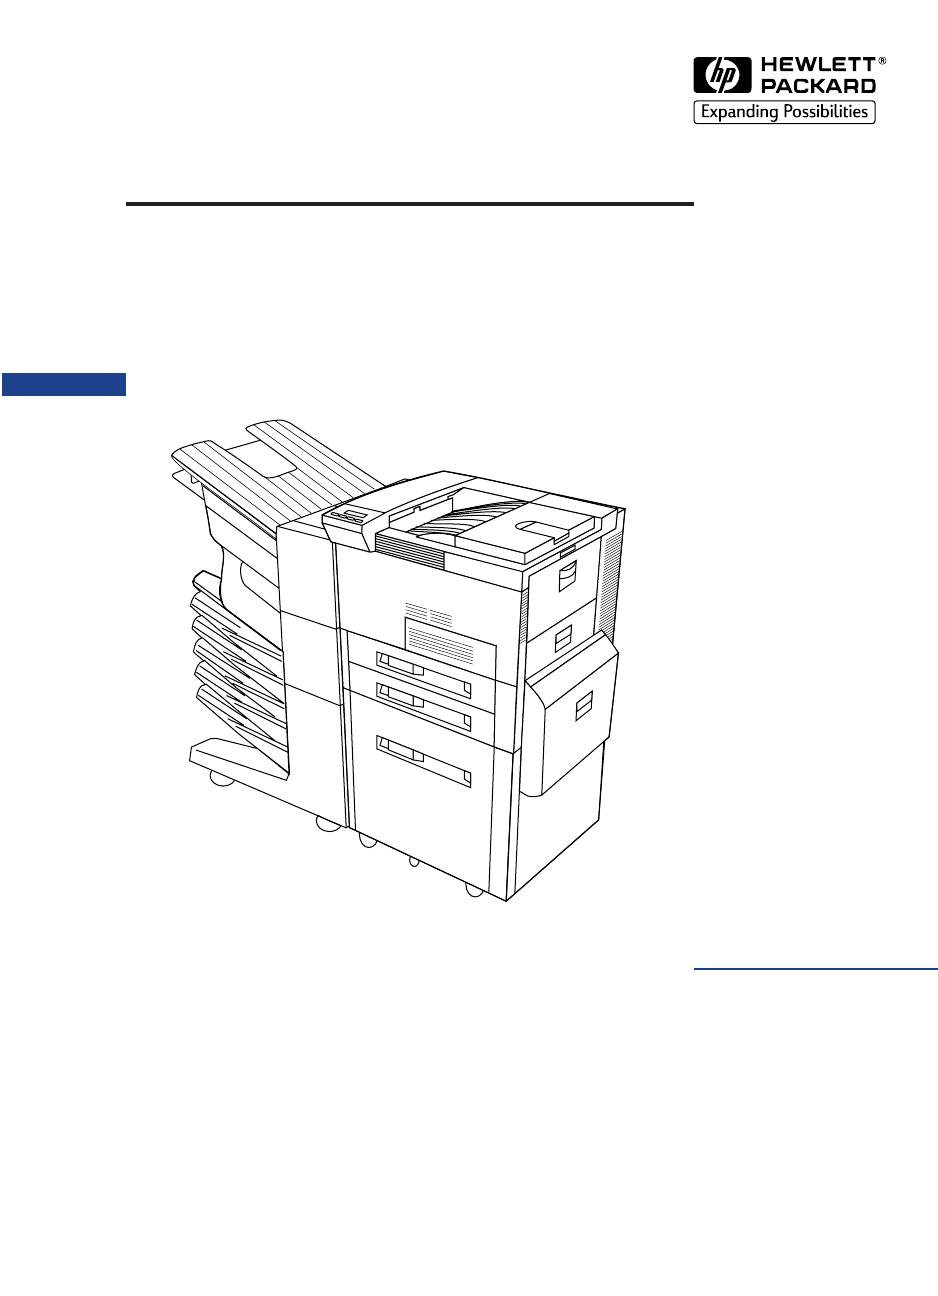 Hp laserjet 8100 service manual